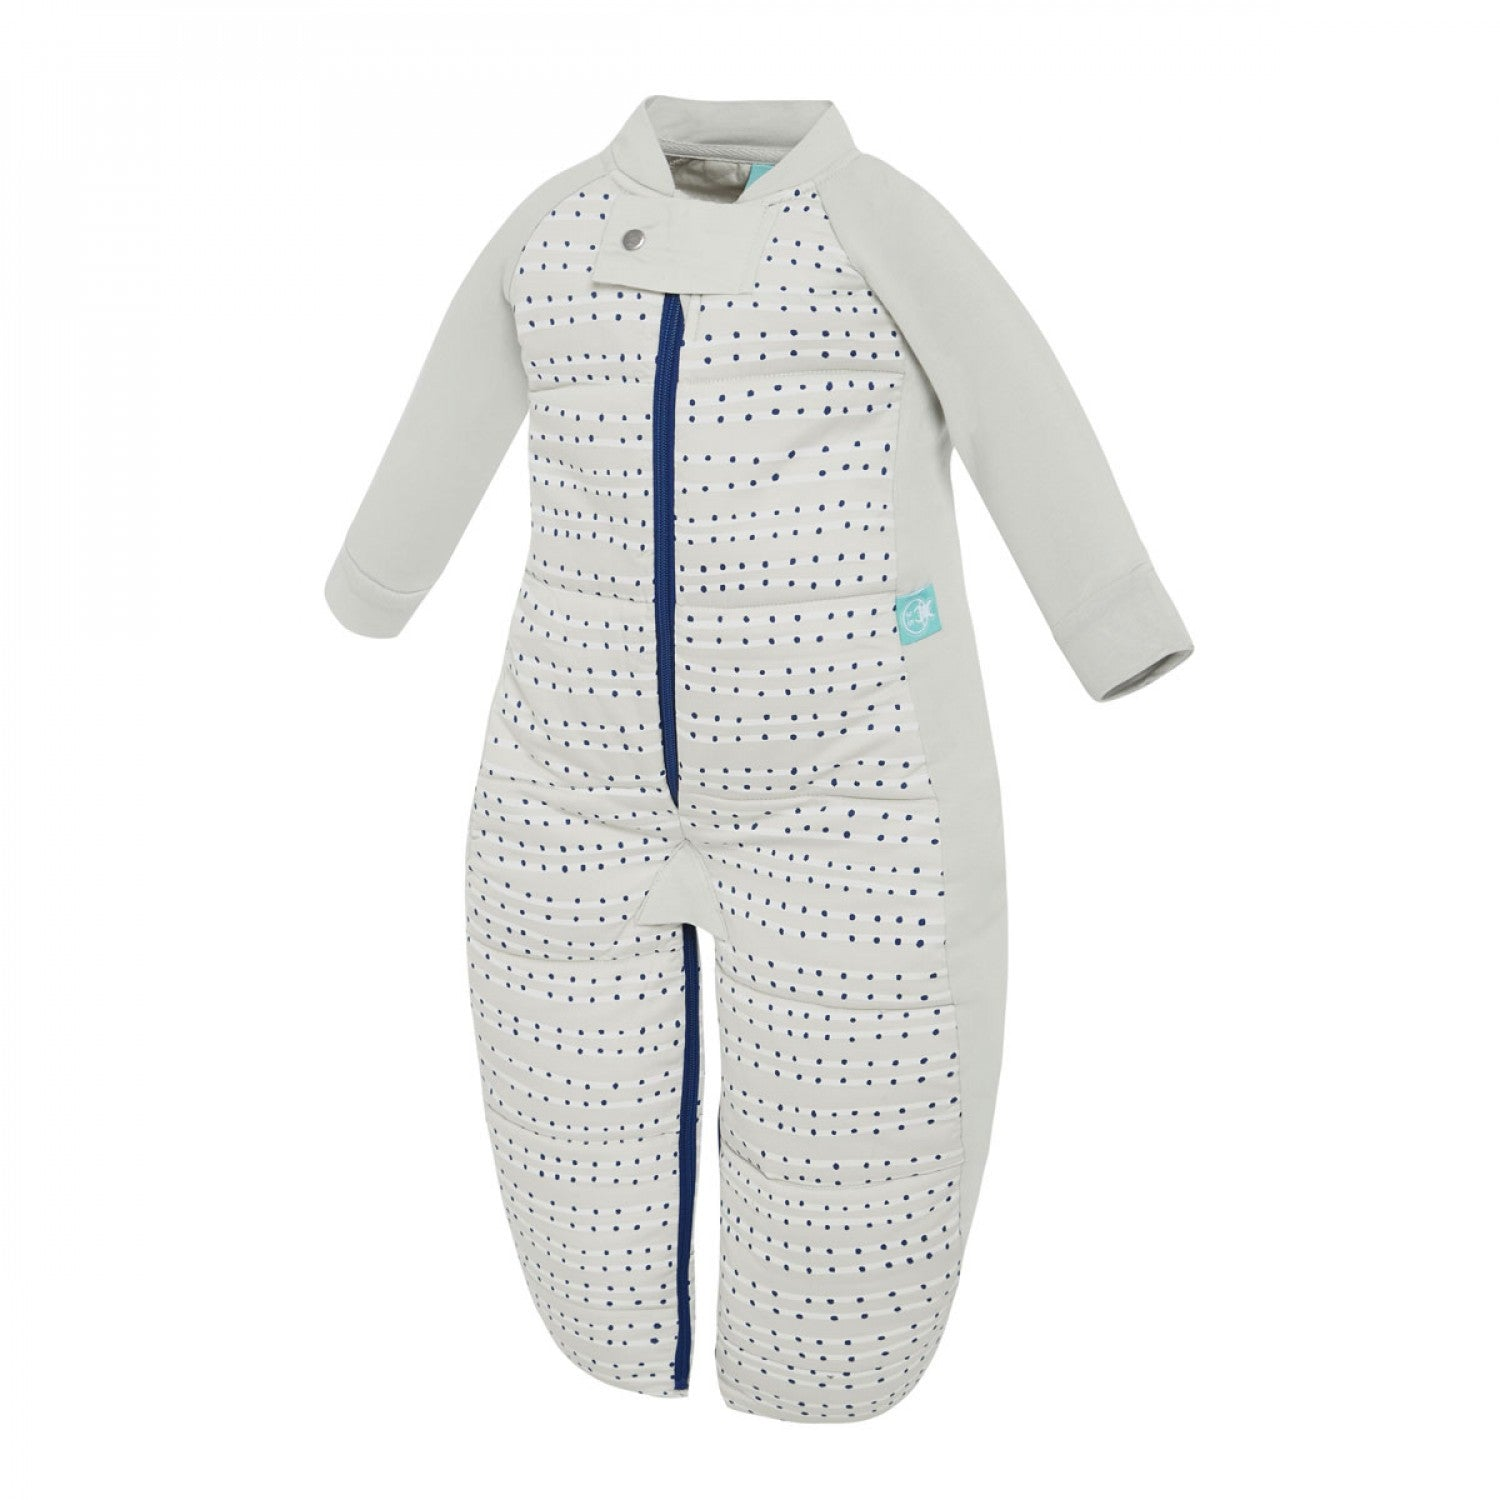 ergoPouch Winter Sleepsuit Bag (2.5 tog) - Blue Dot